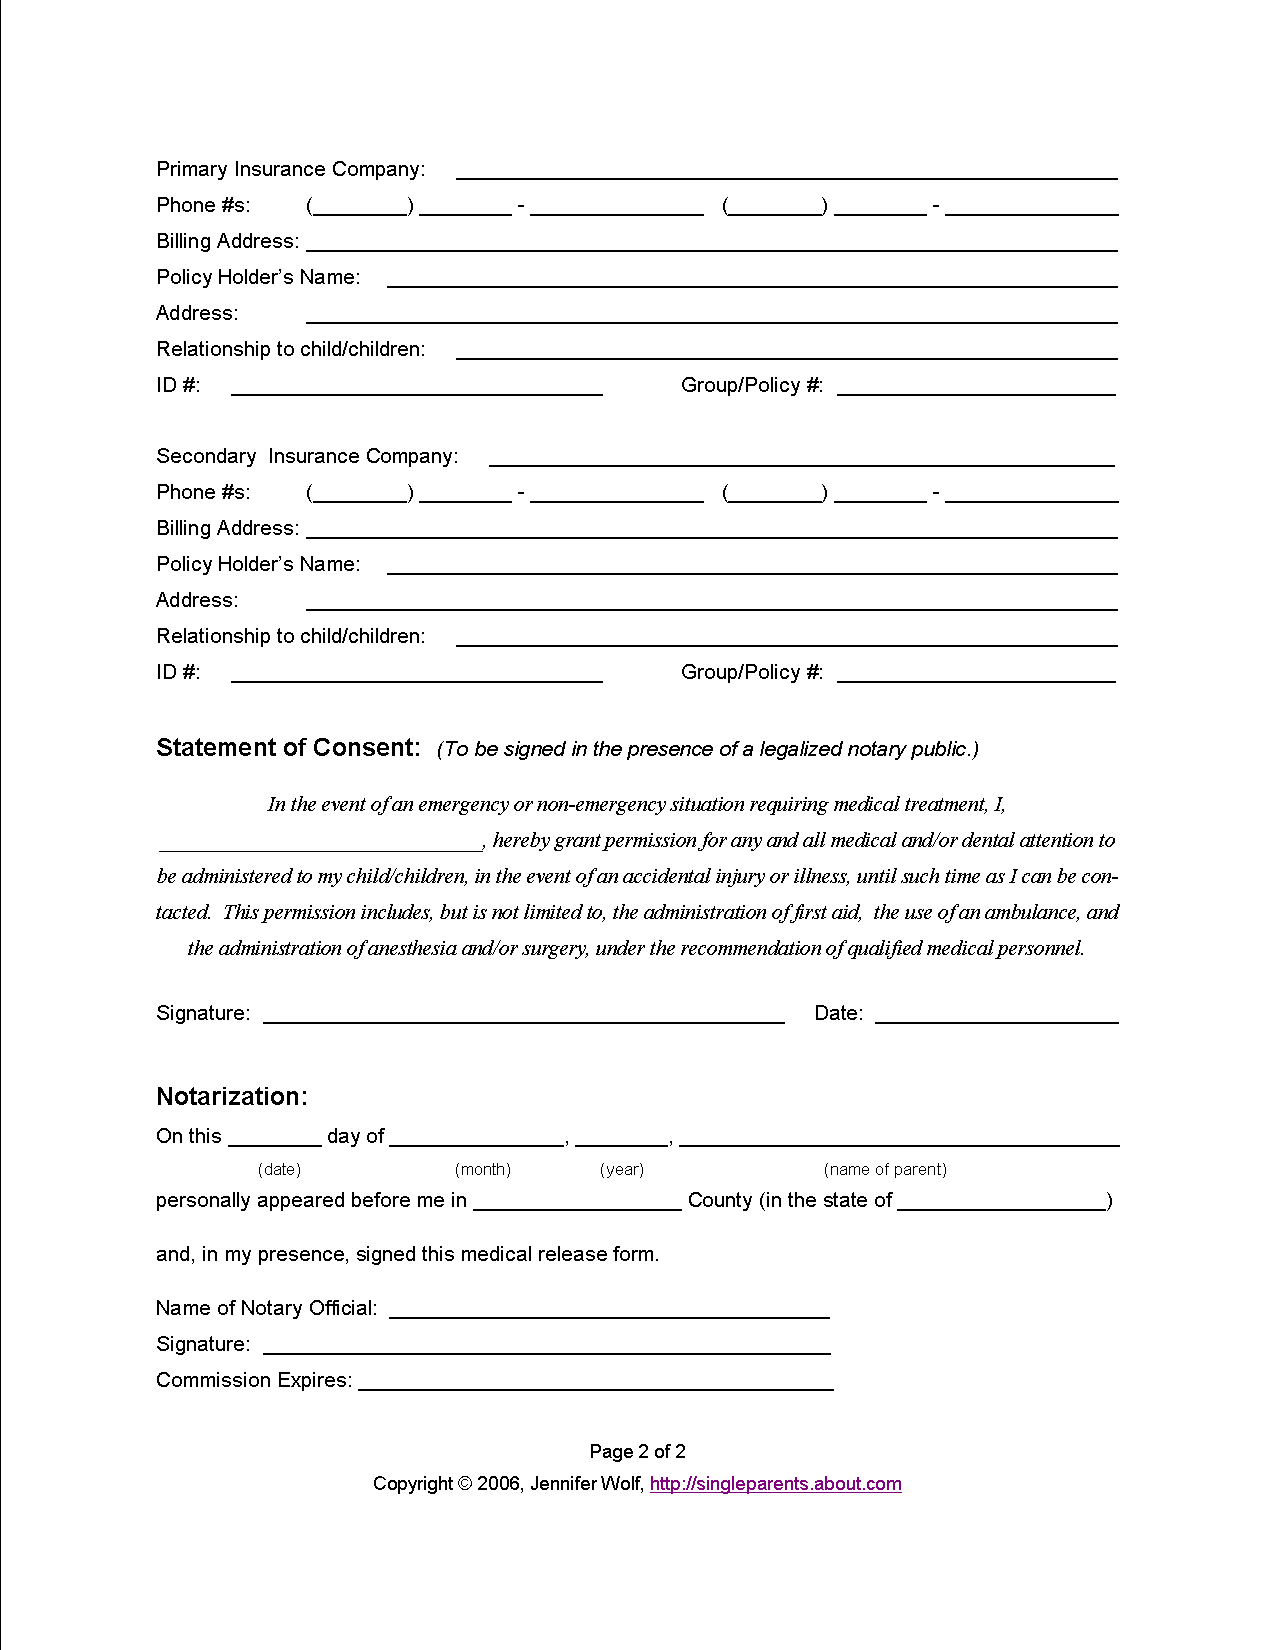 Medical Release Letter Template - Do You Have A Medical Release form for Your Kids